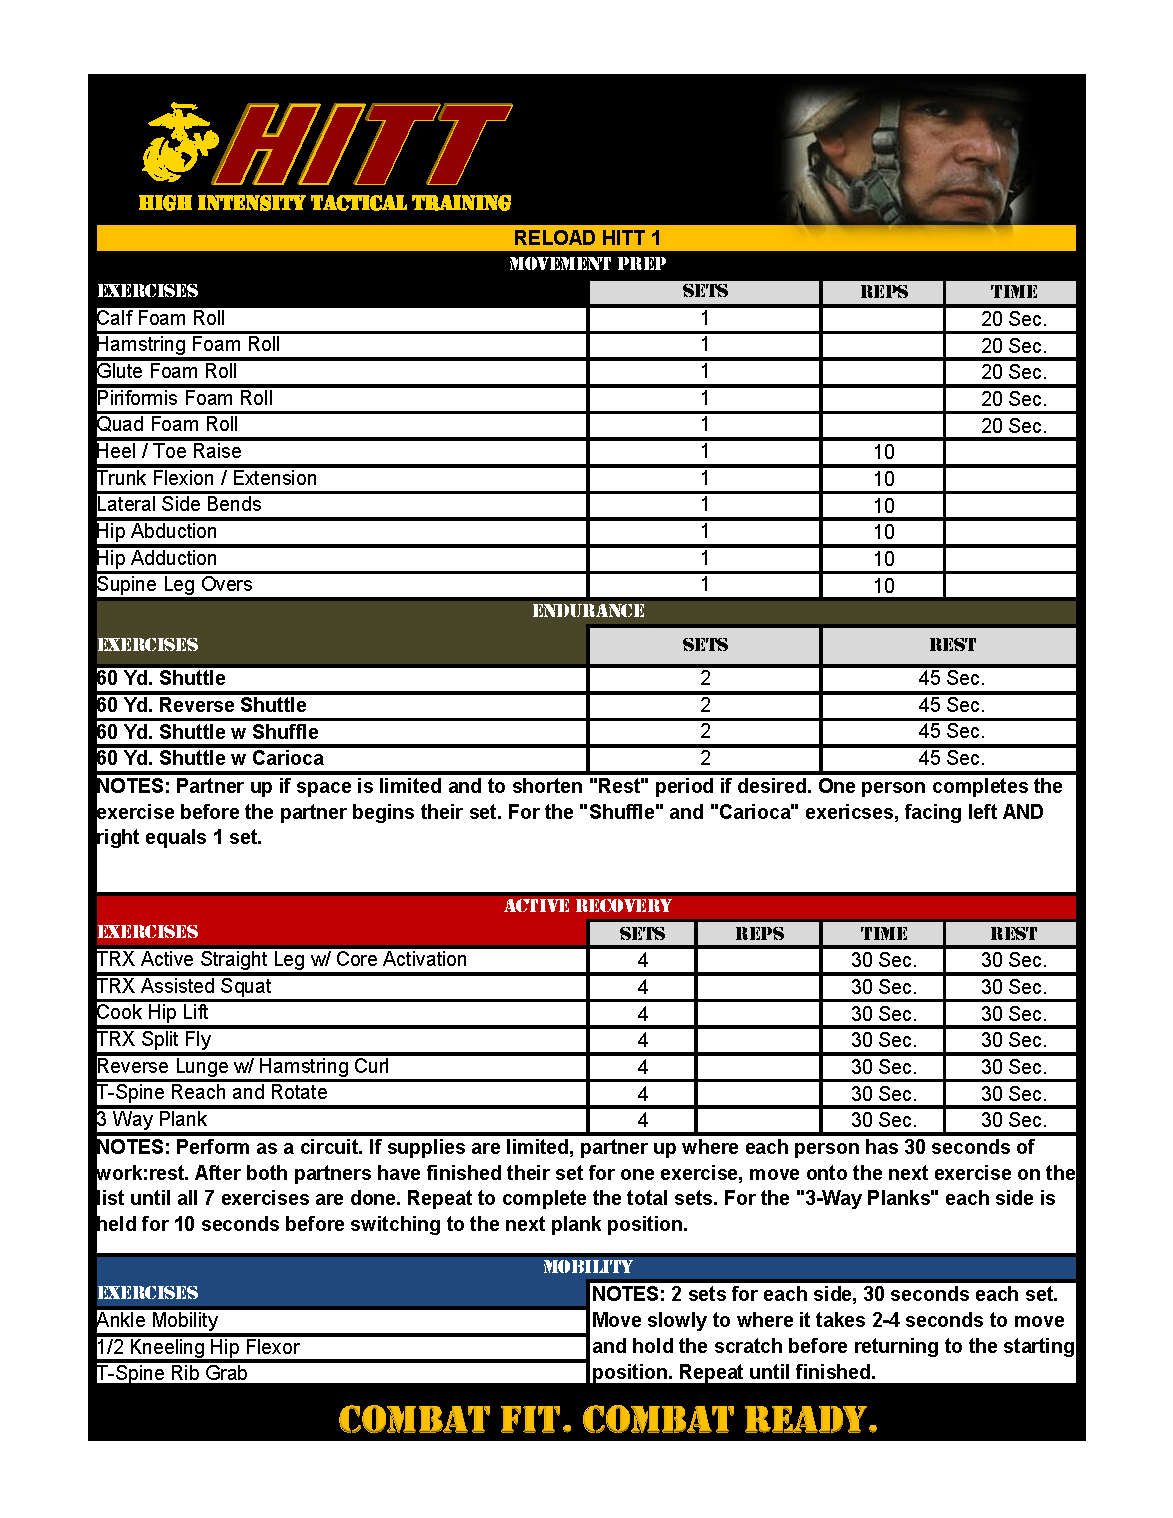 Usmc Pft Workout Plan